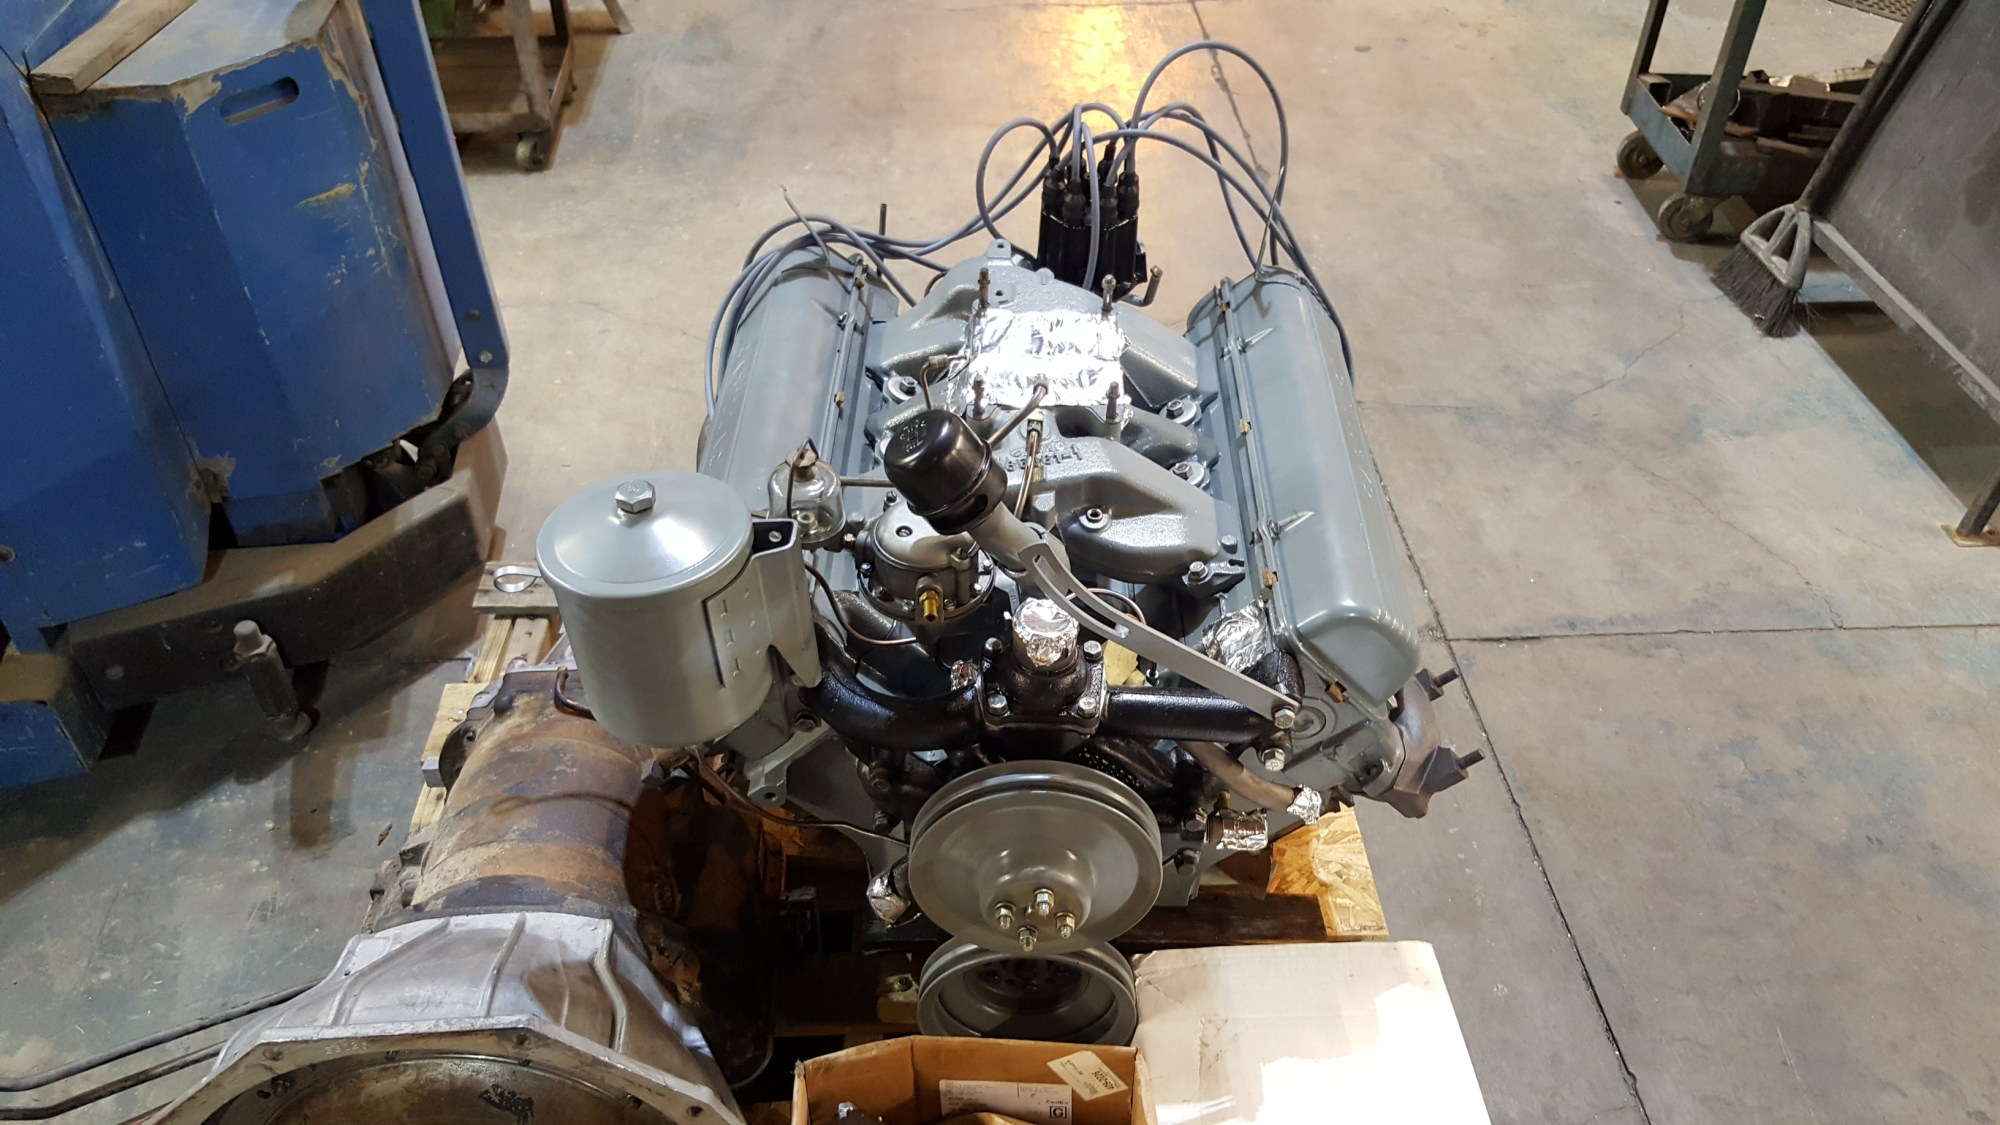 hight resolution of 1957 cadillac 365 v8 engine rebuild and restoration